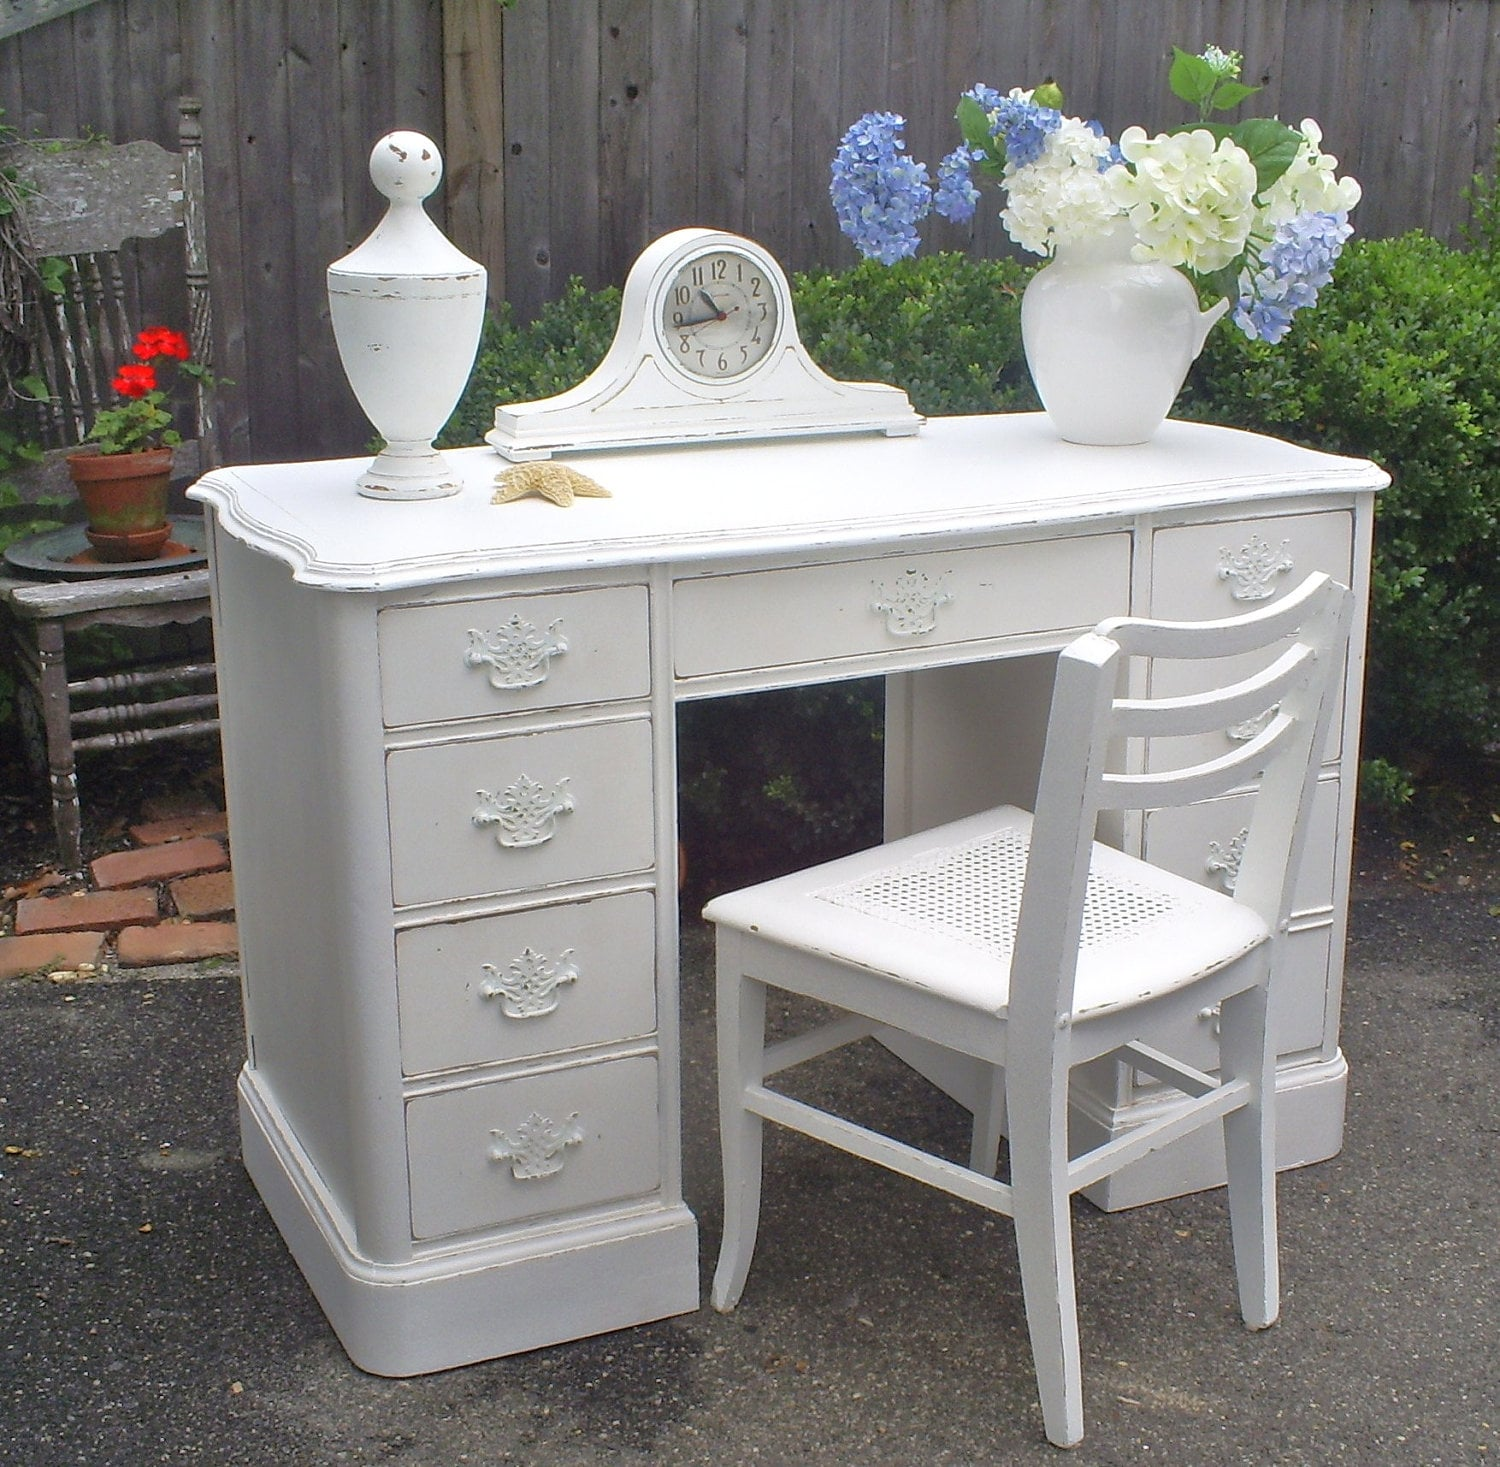 Desk white shabby chic painted furniture by backporchco on - White shabby chic furniture ...